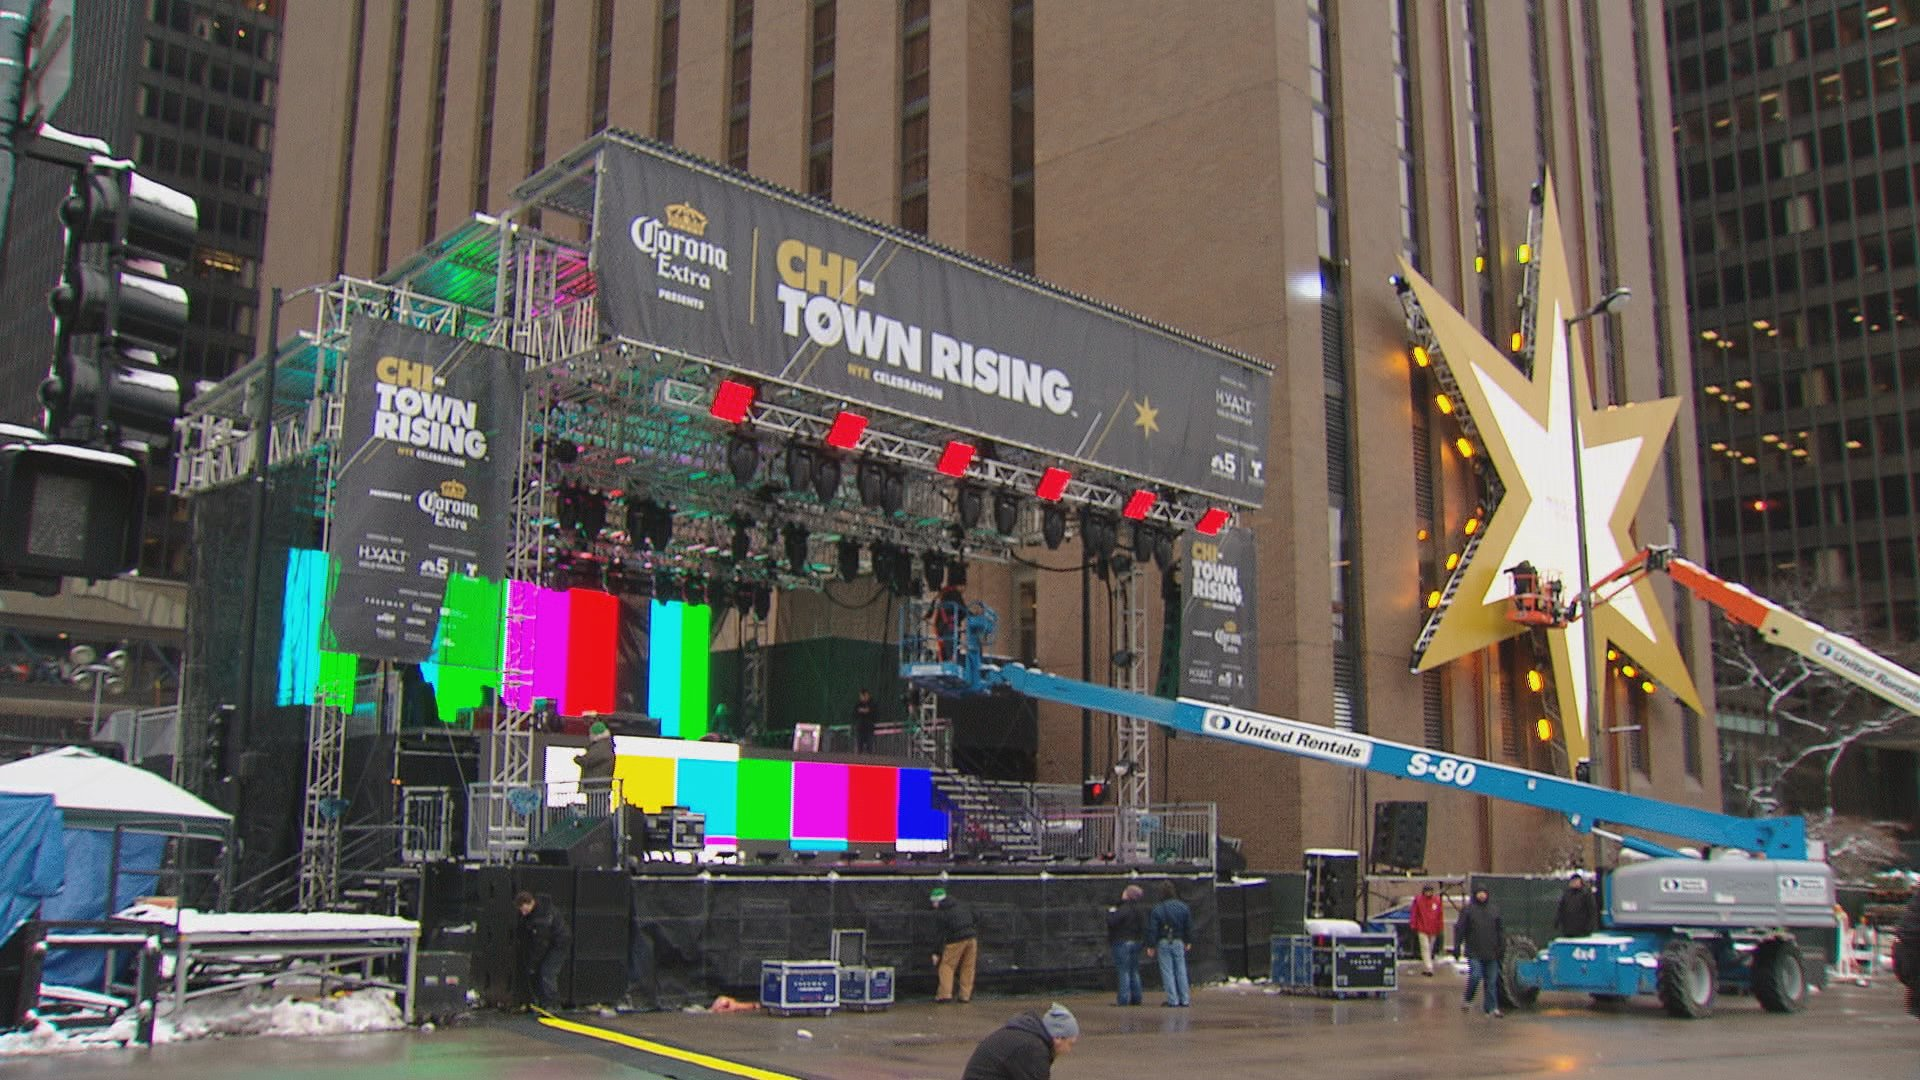 Crews set up the Chi-Town Rising Countdown Stage and Chicago star on Wednesday afternoon.